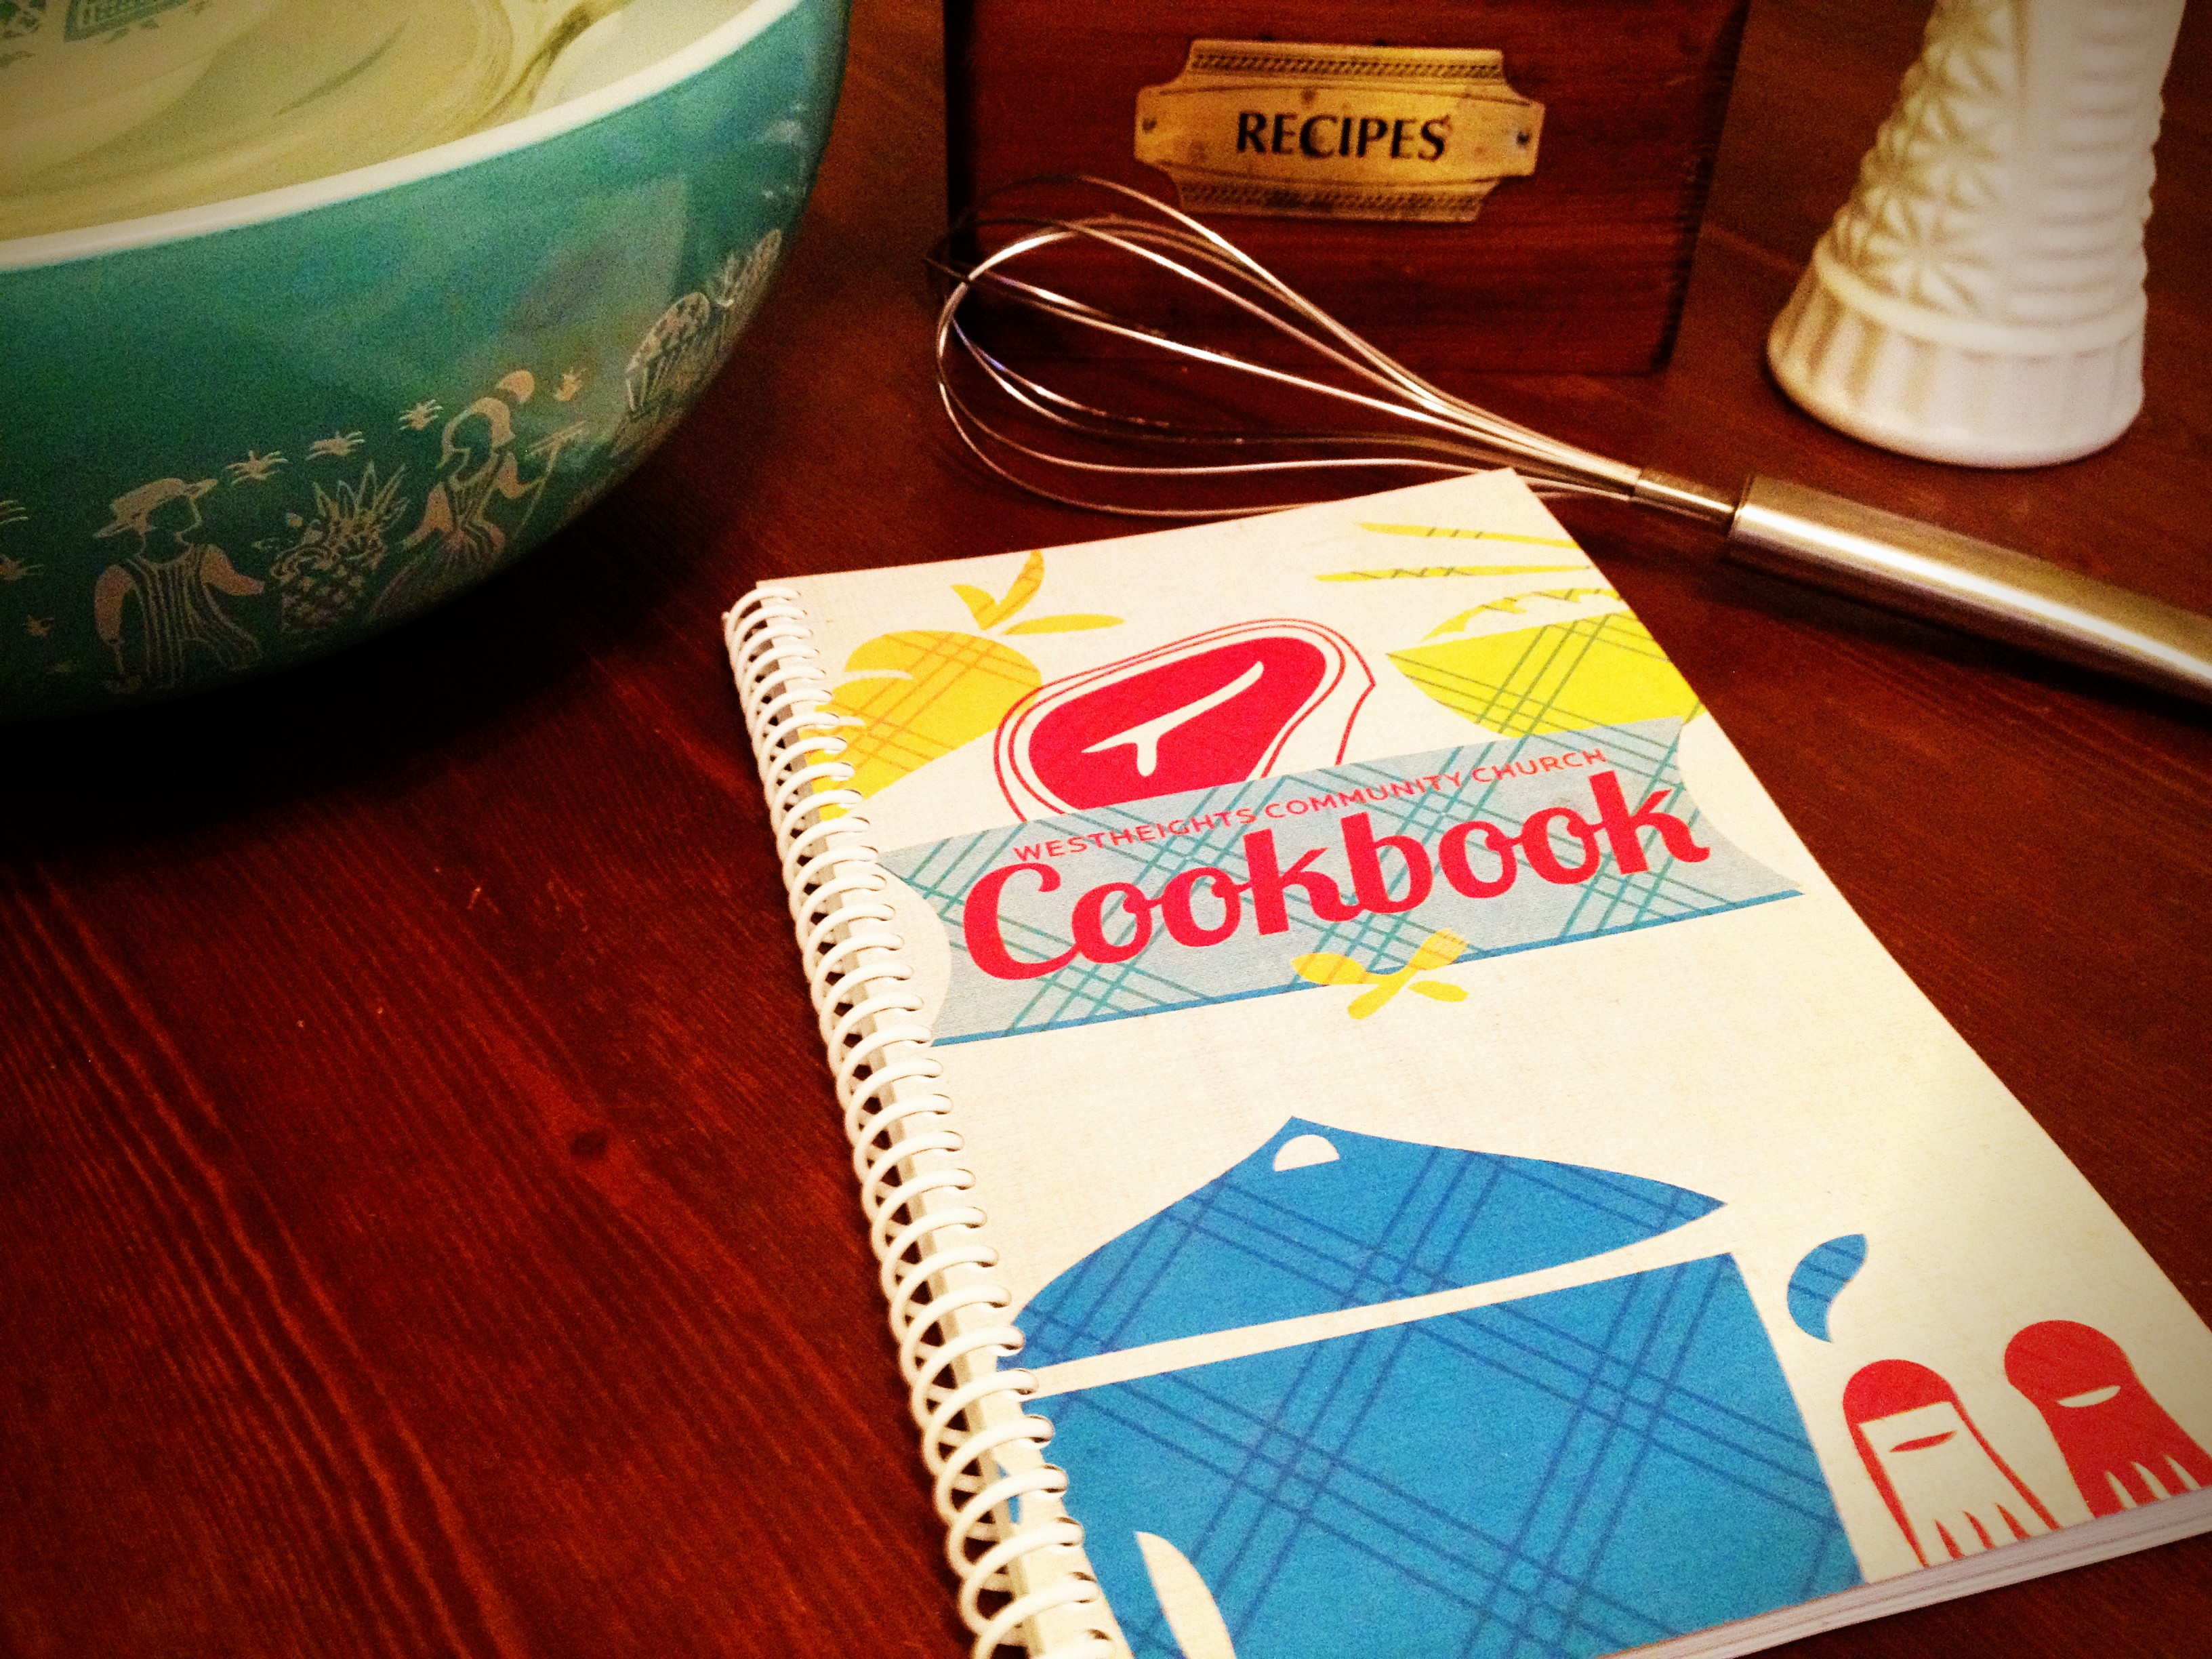 There's Still Time to Order Cookbooks!